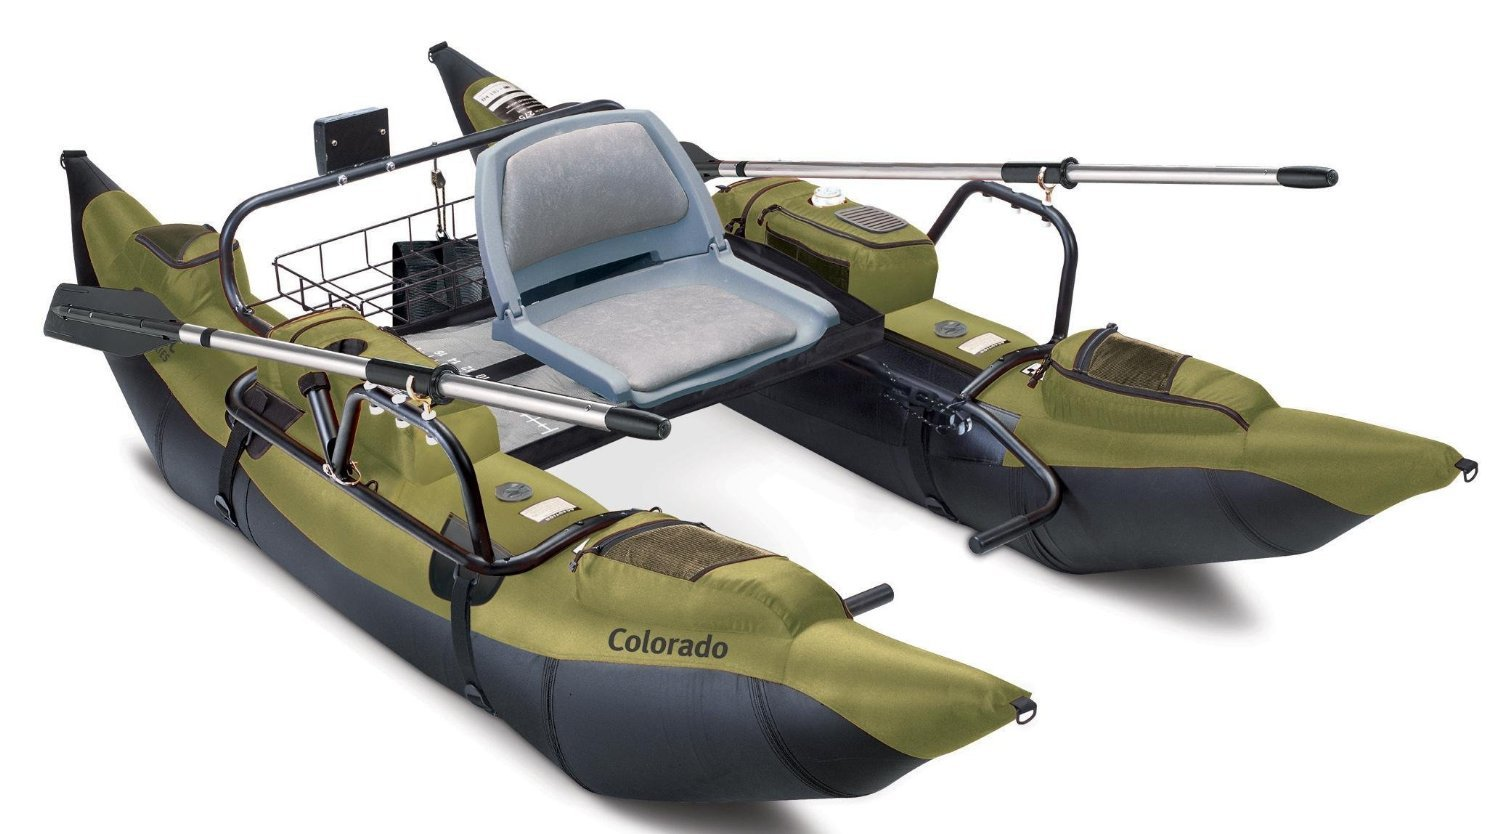 Classic Accessories Colorado Inflatable Fishing Pontoon Boat With Motor Mount by Classic Accessories